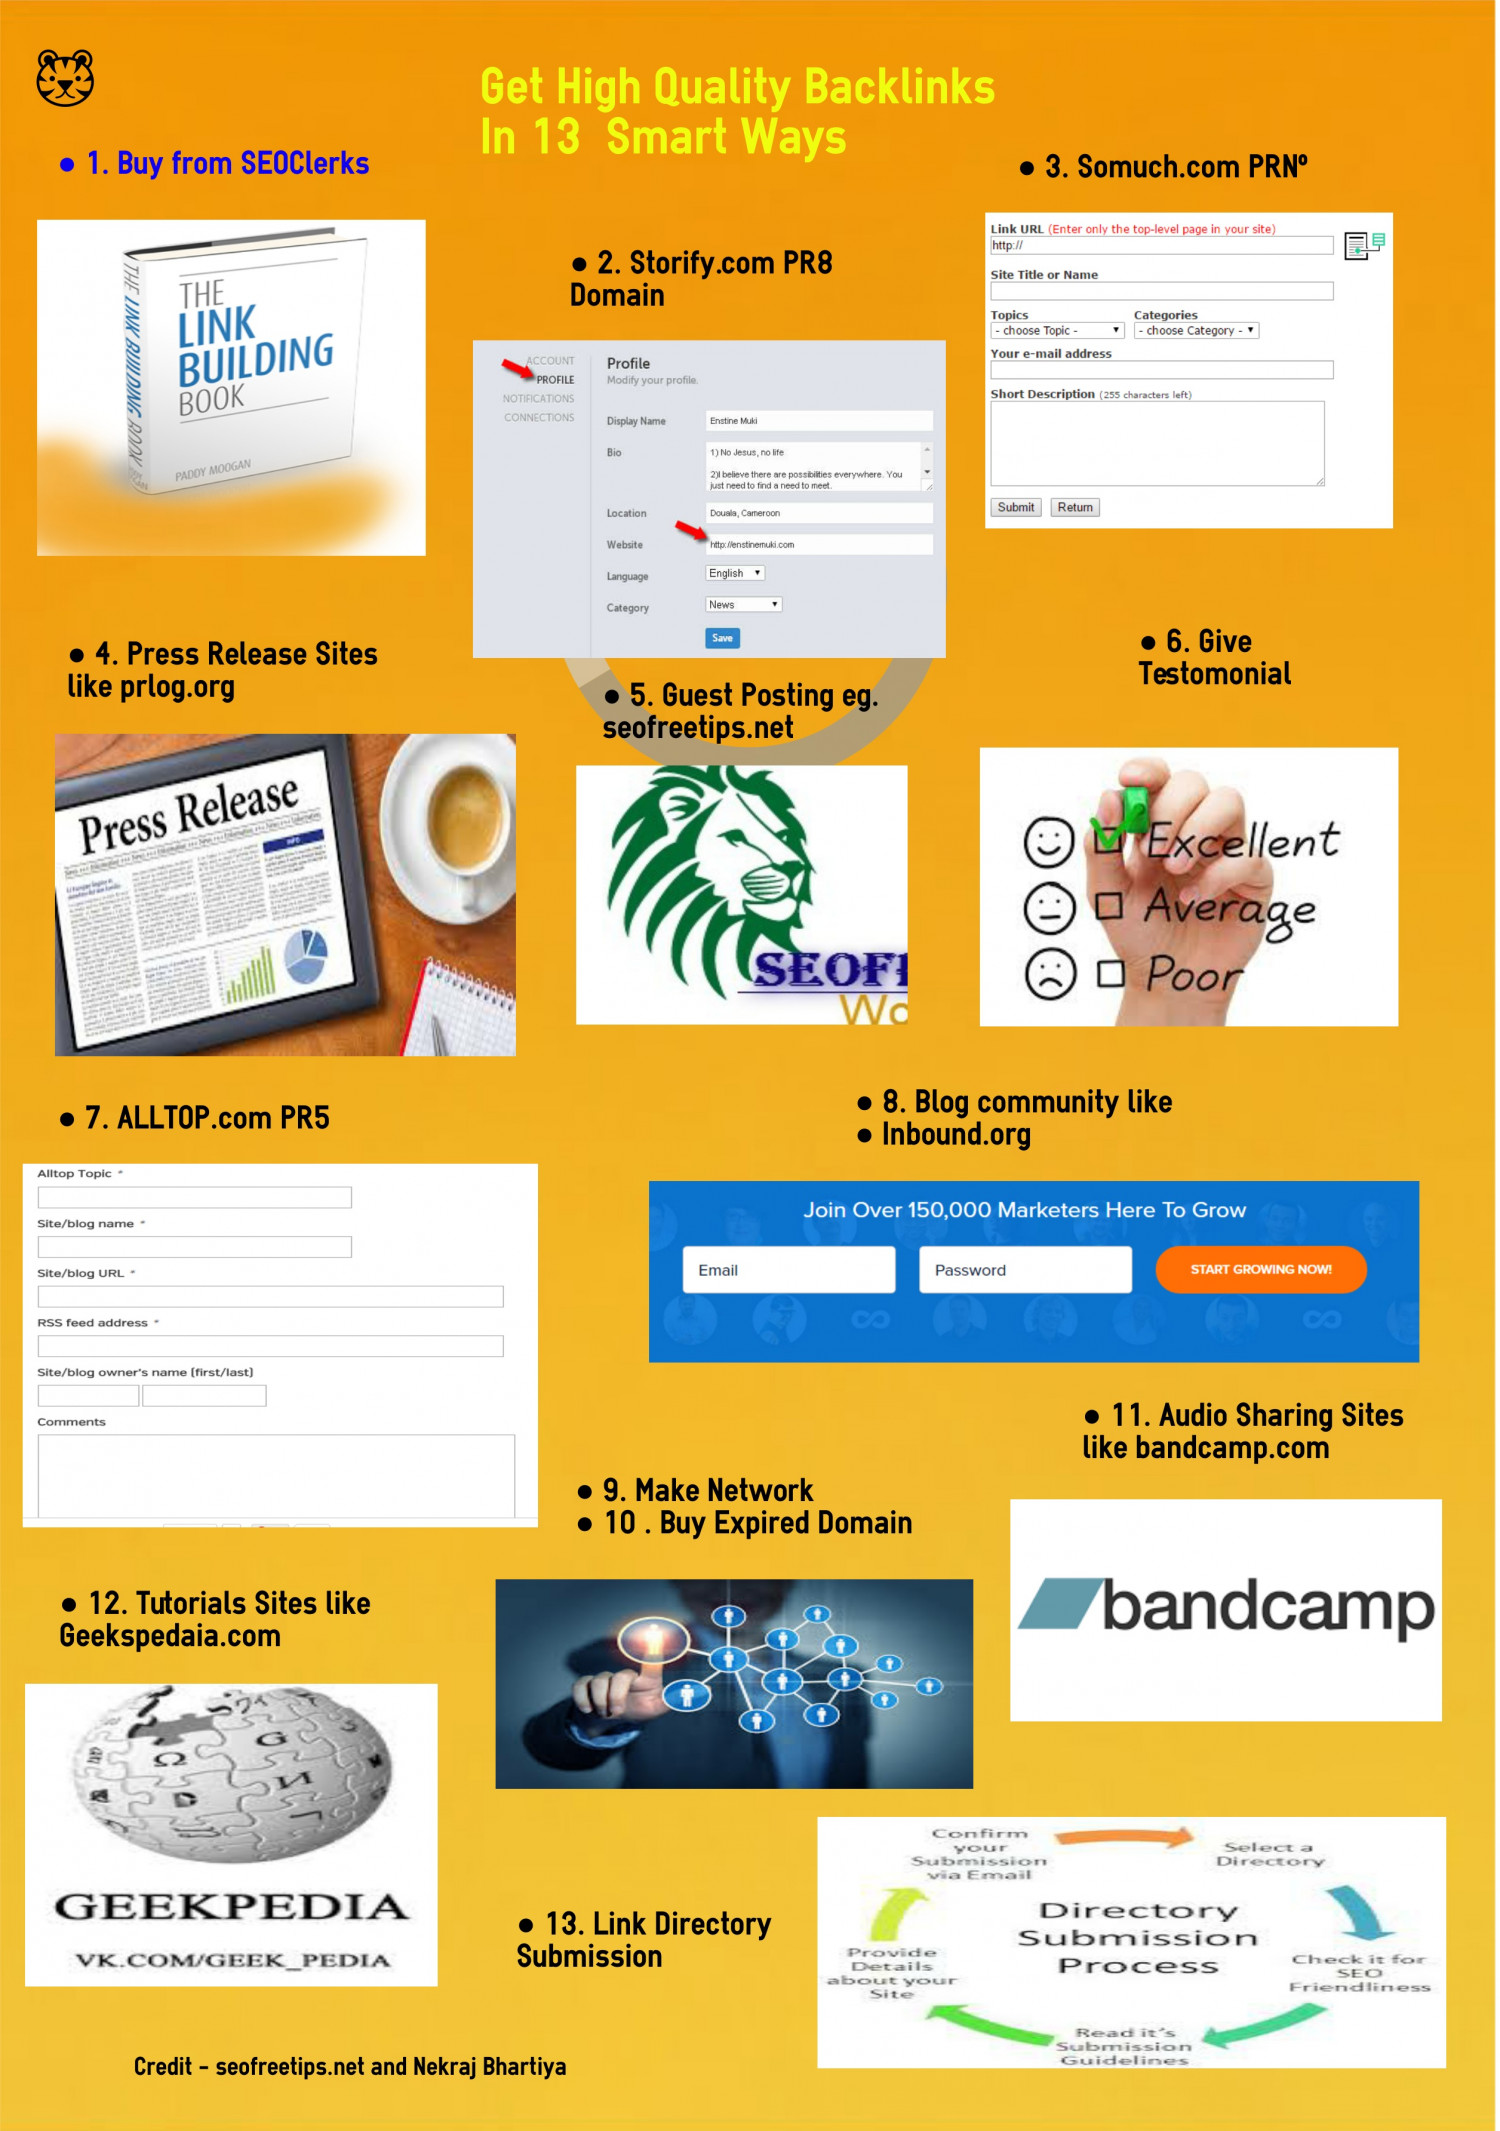 How to Get High Quality Backinks : 13 Smart Way Infographic